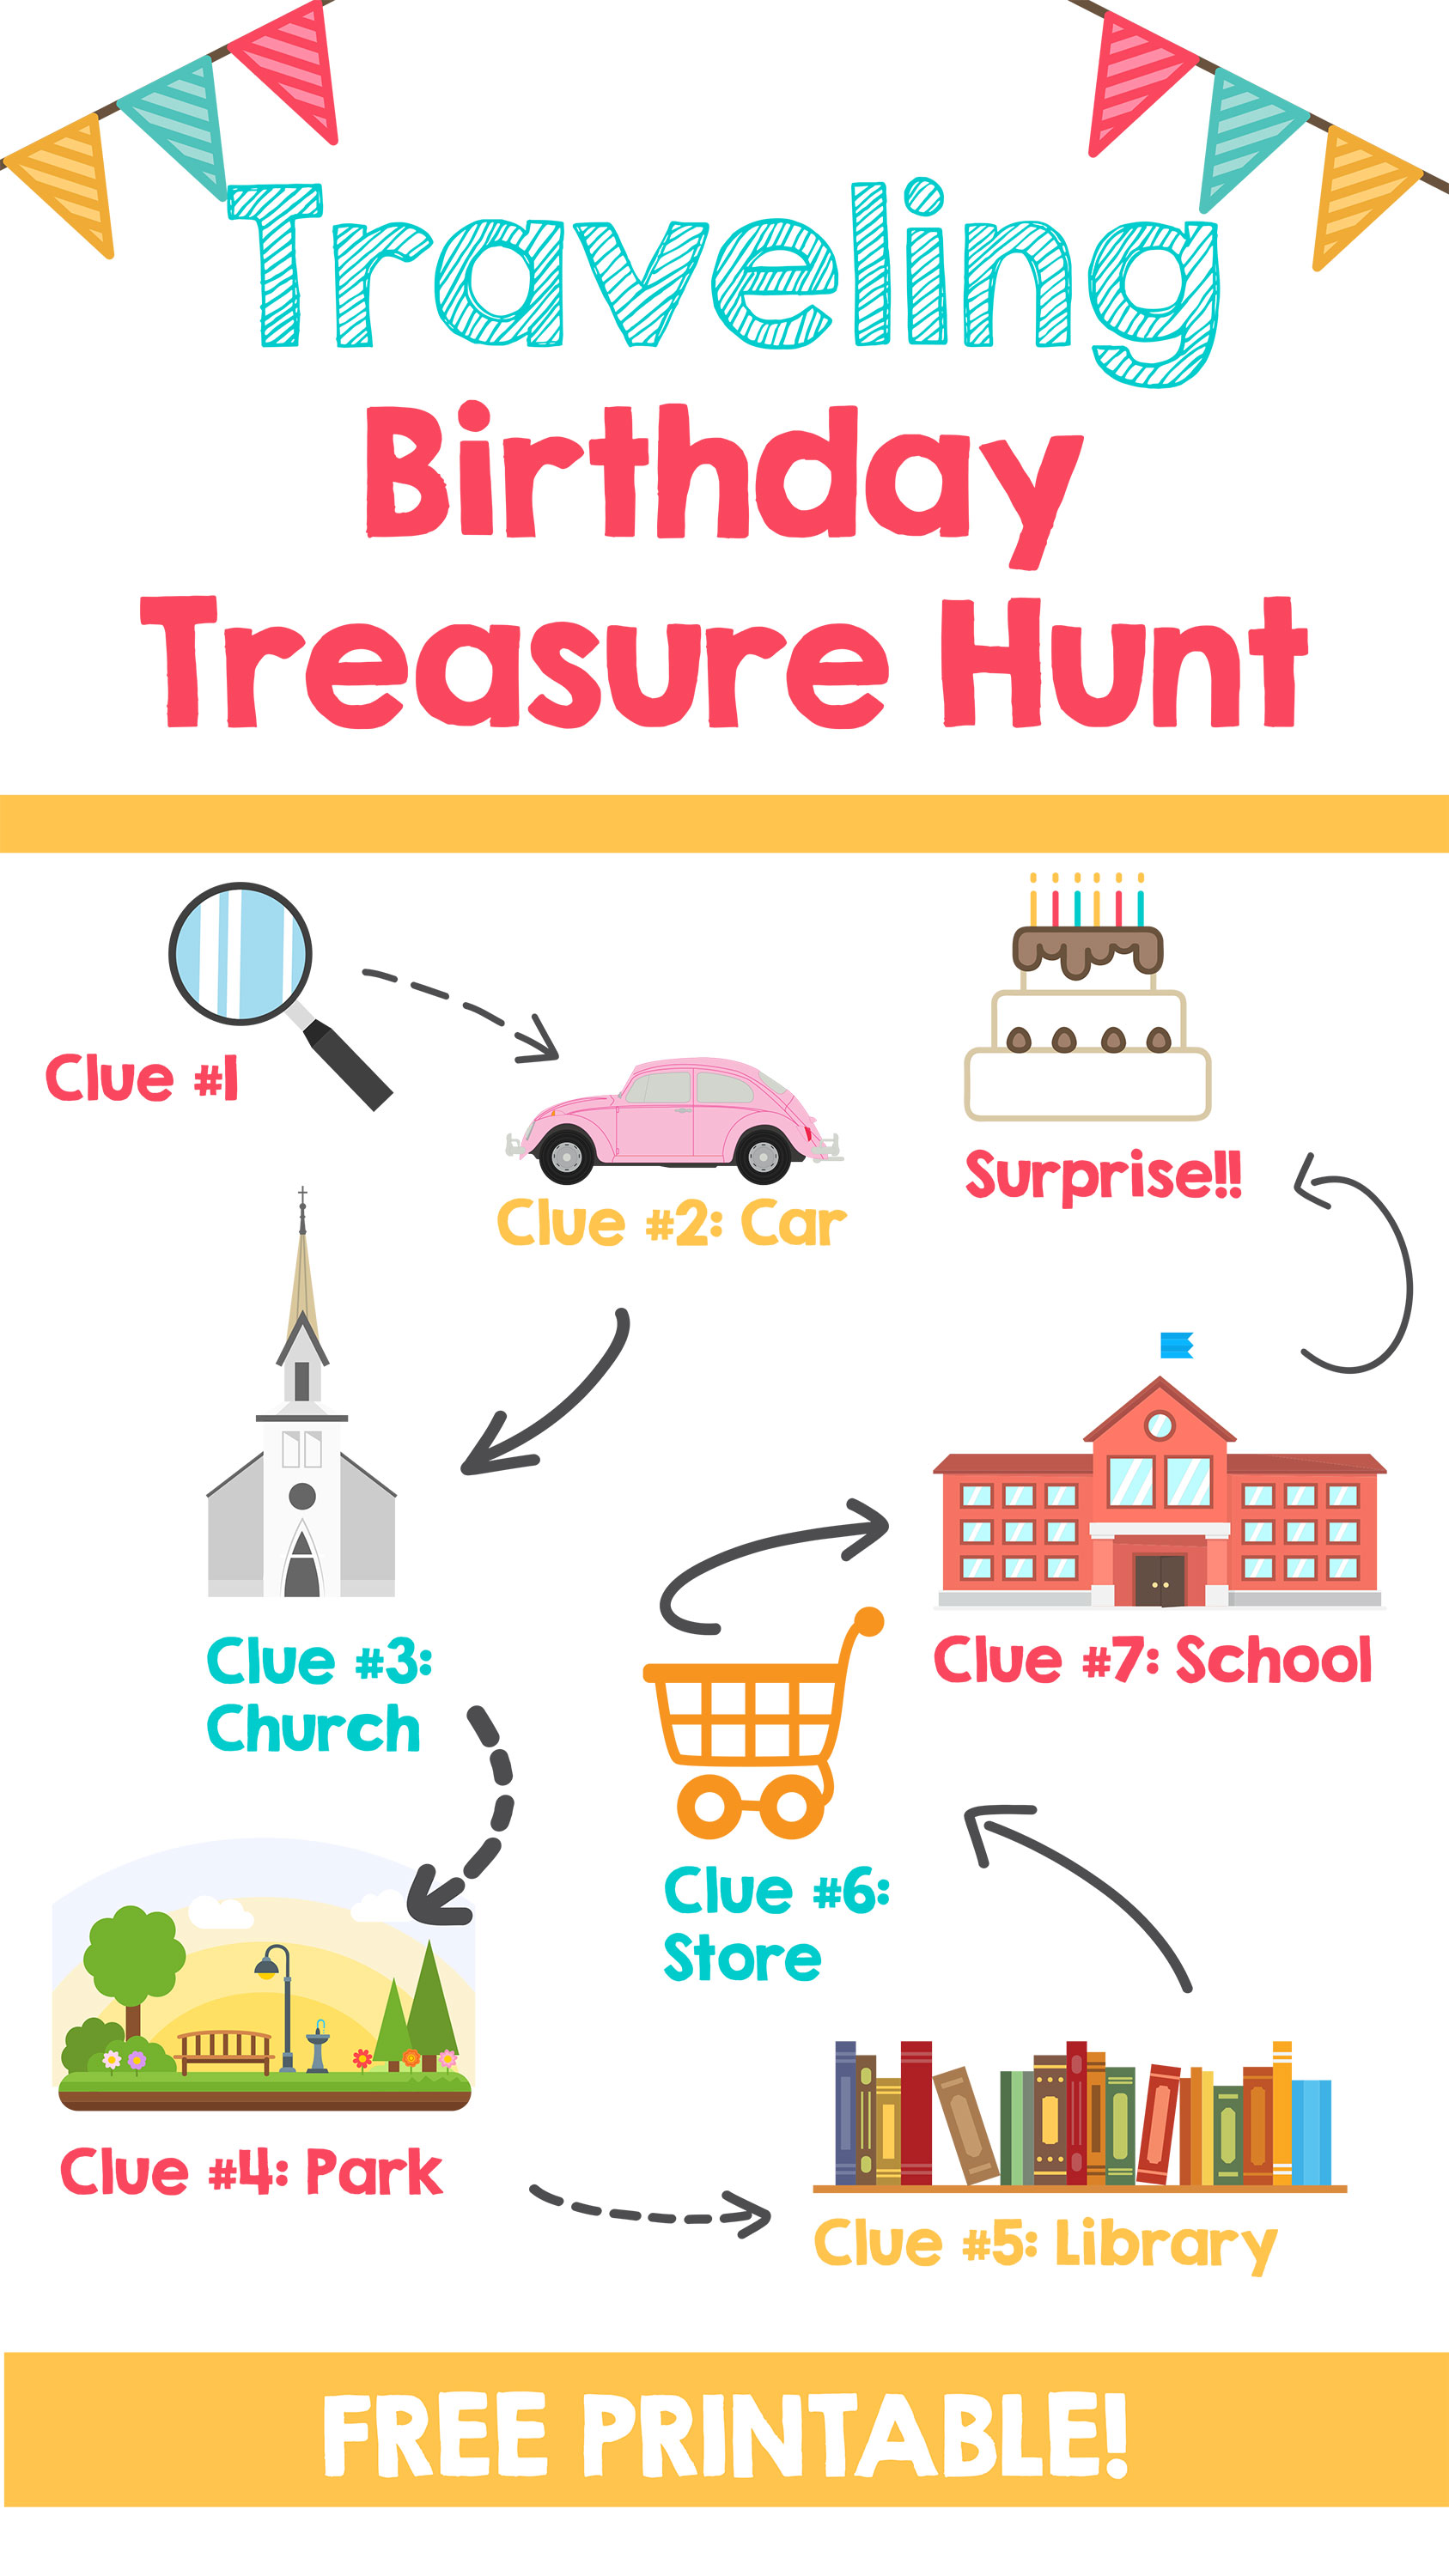 Scavenger Hunt Clues For A Church 1988 Firebird Wiring Diagram Clue Array Free Traveling Birthday Treasure Printable My Silly Squirts Rh Mysillysquirts Com